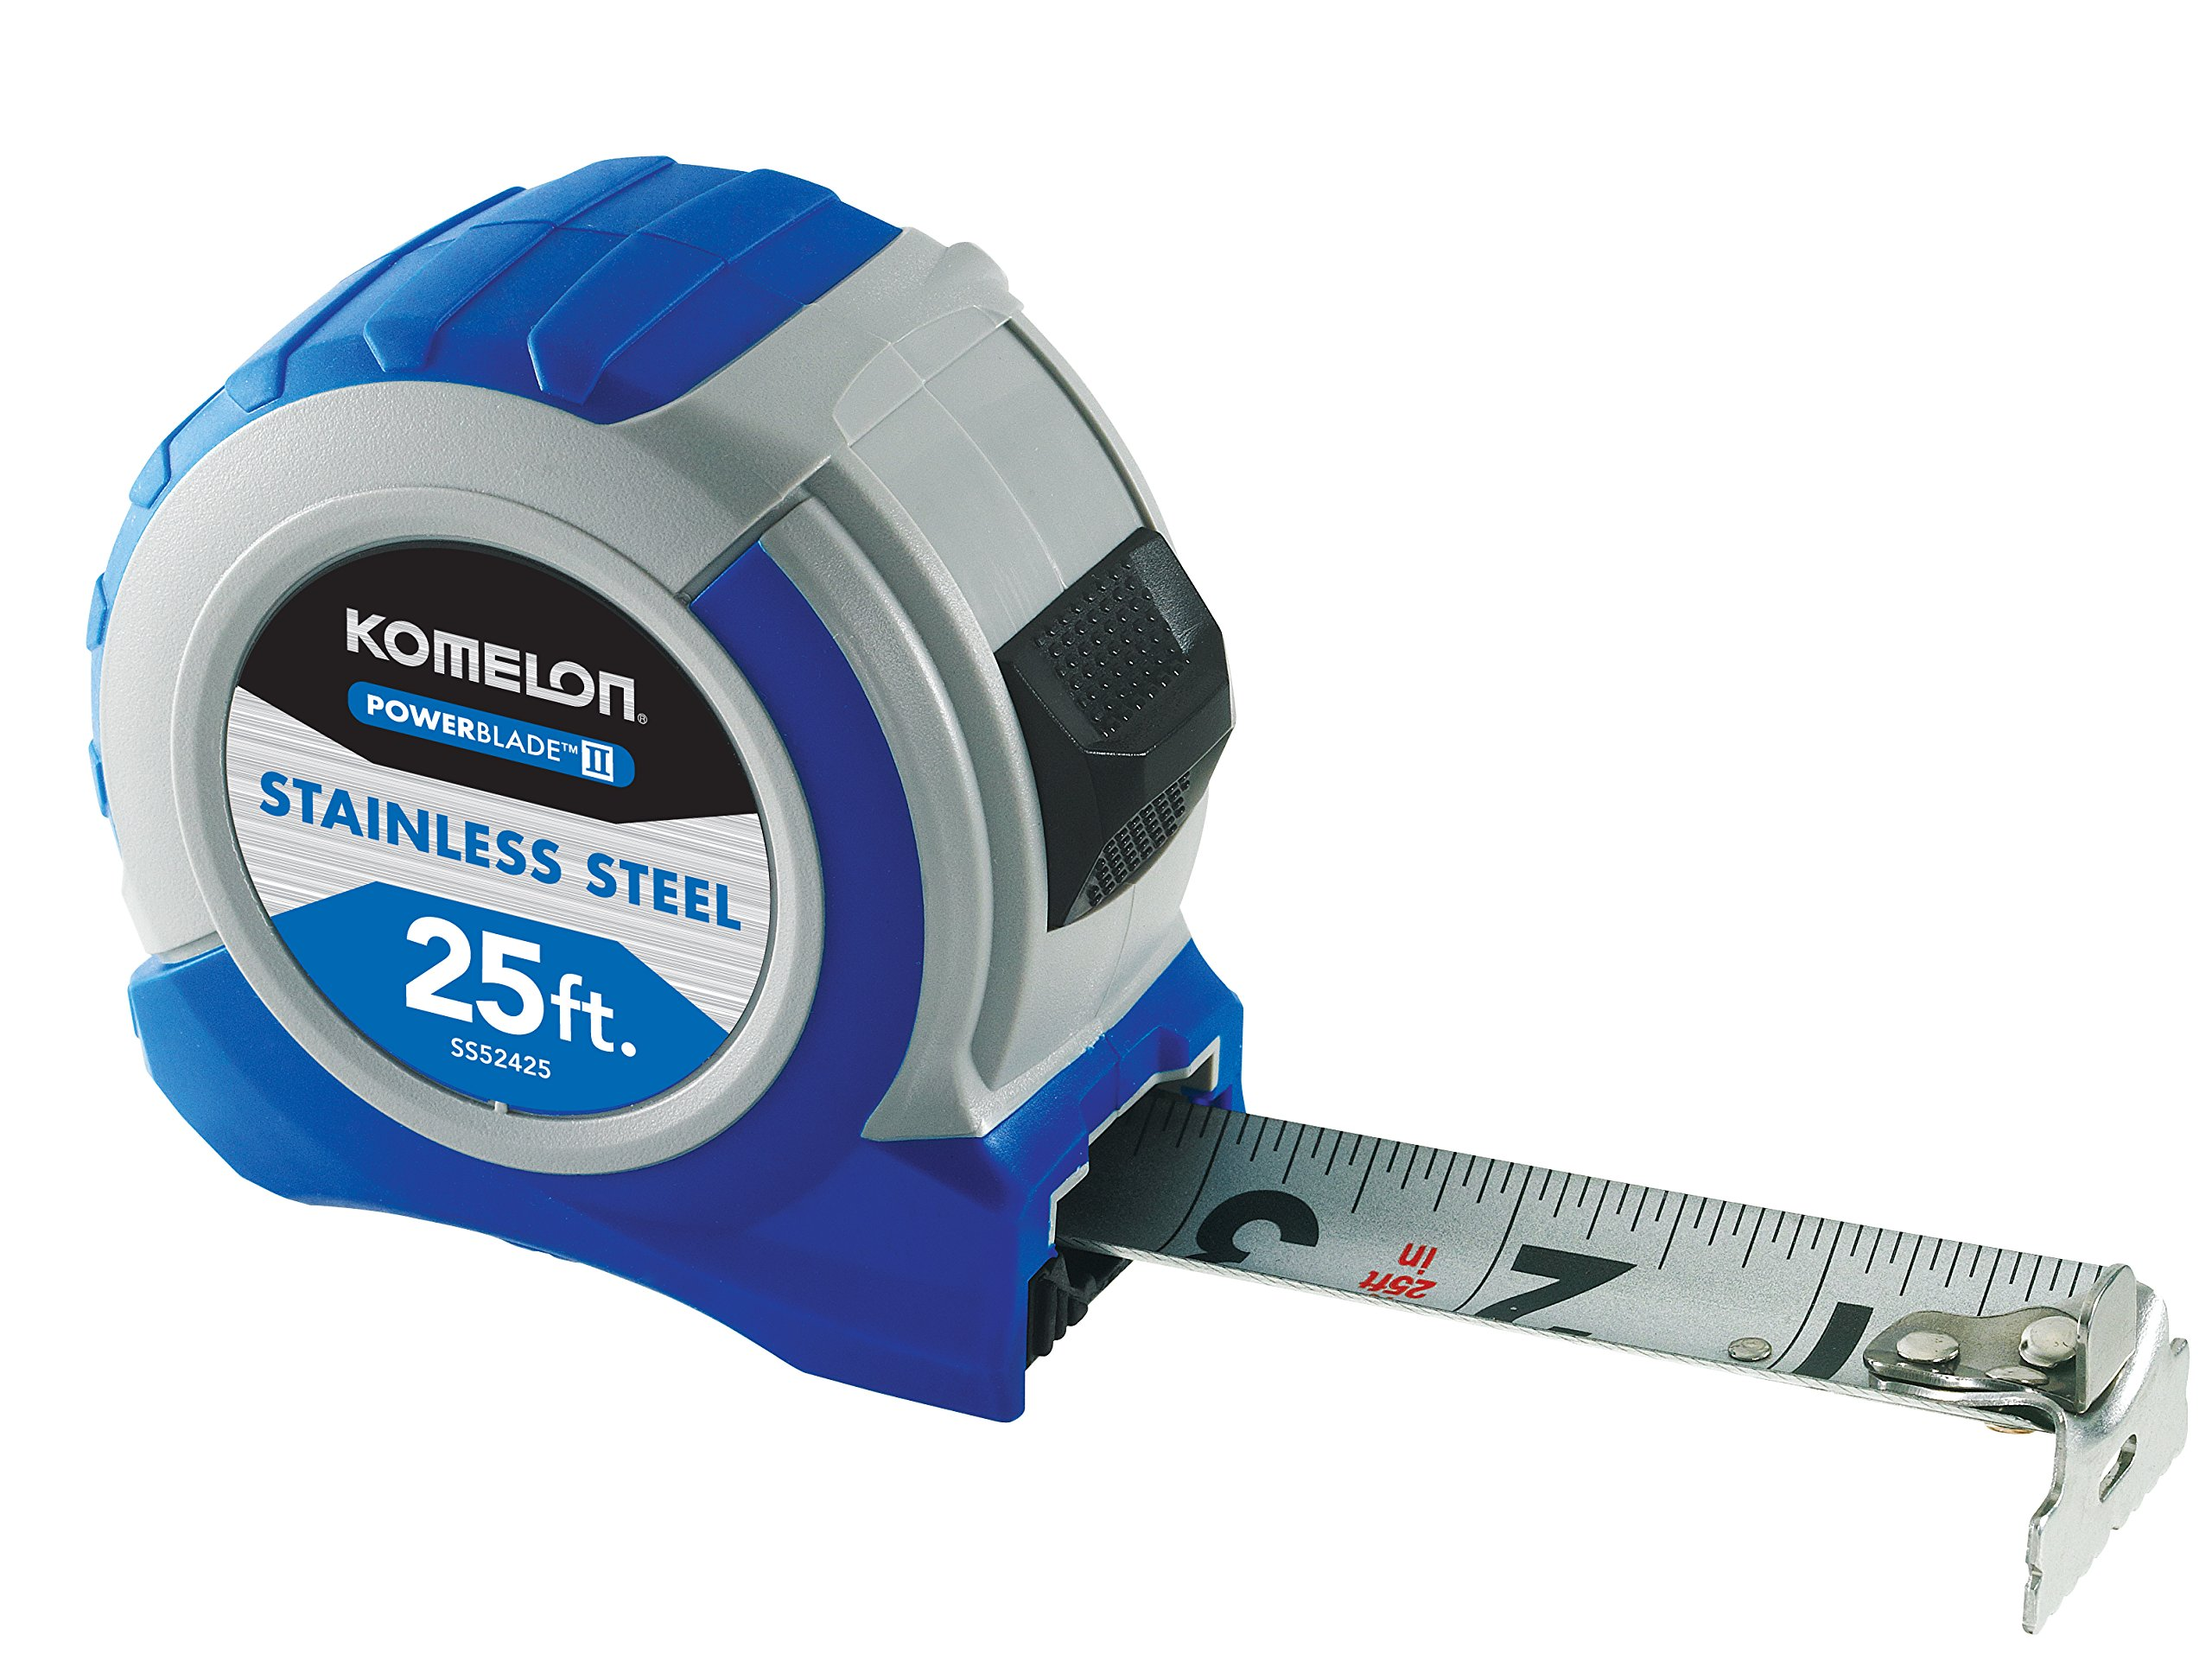 Komelon SS52425 25' x 1.06'' Powerblade II Tape Measure, Blue/Gray by Komelon